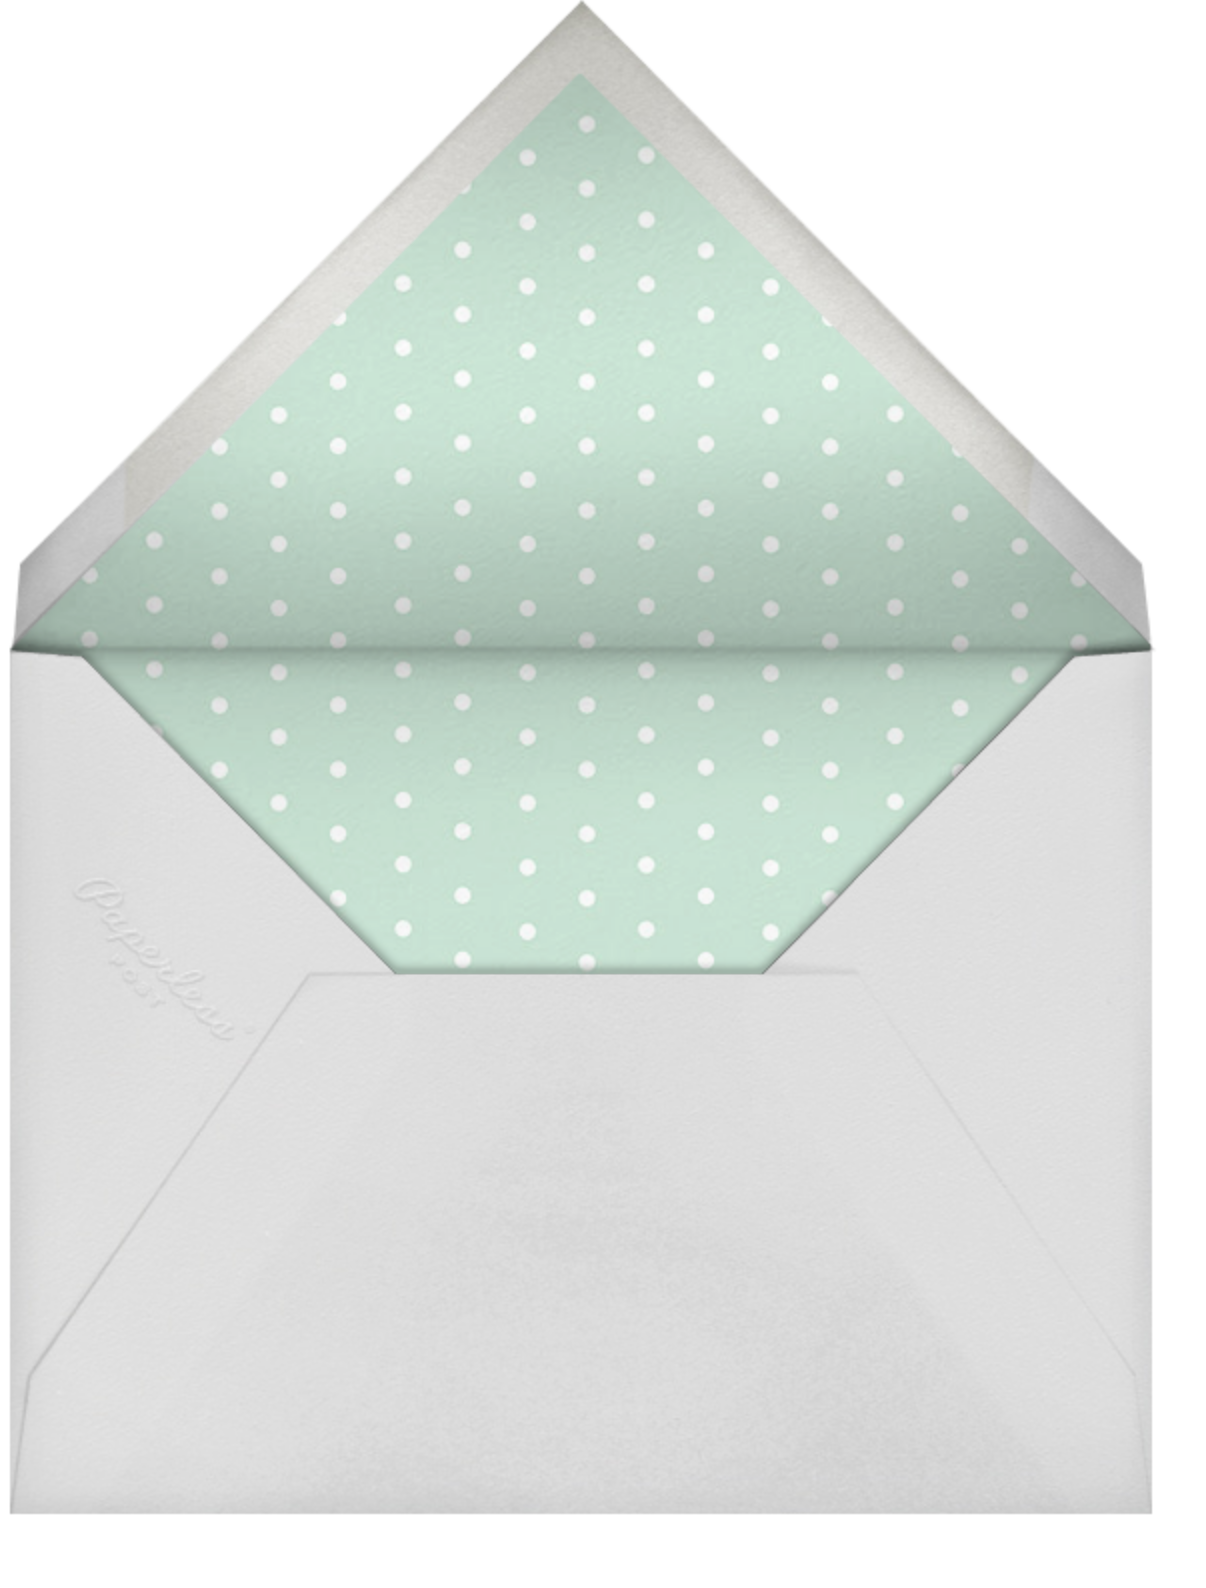 Hot Air Balloon Cluster - Mint/Coral - Paperless Post - Retirement party - envelope back